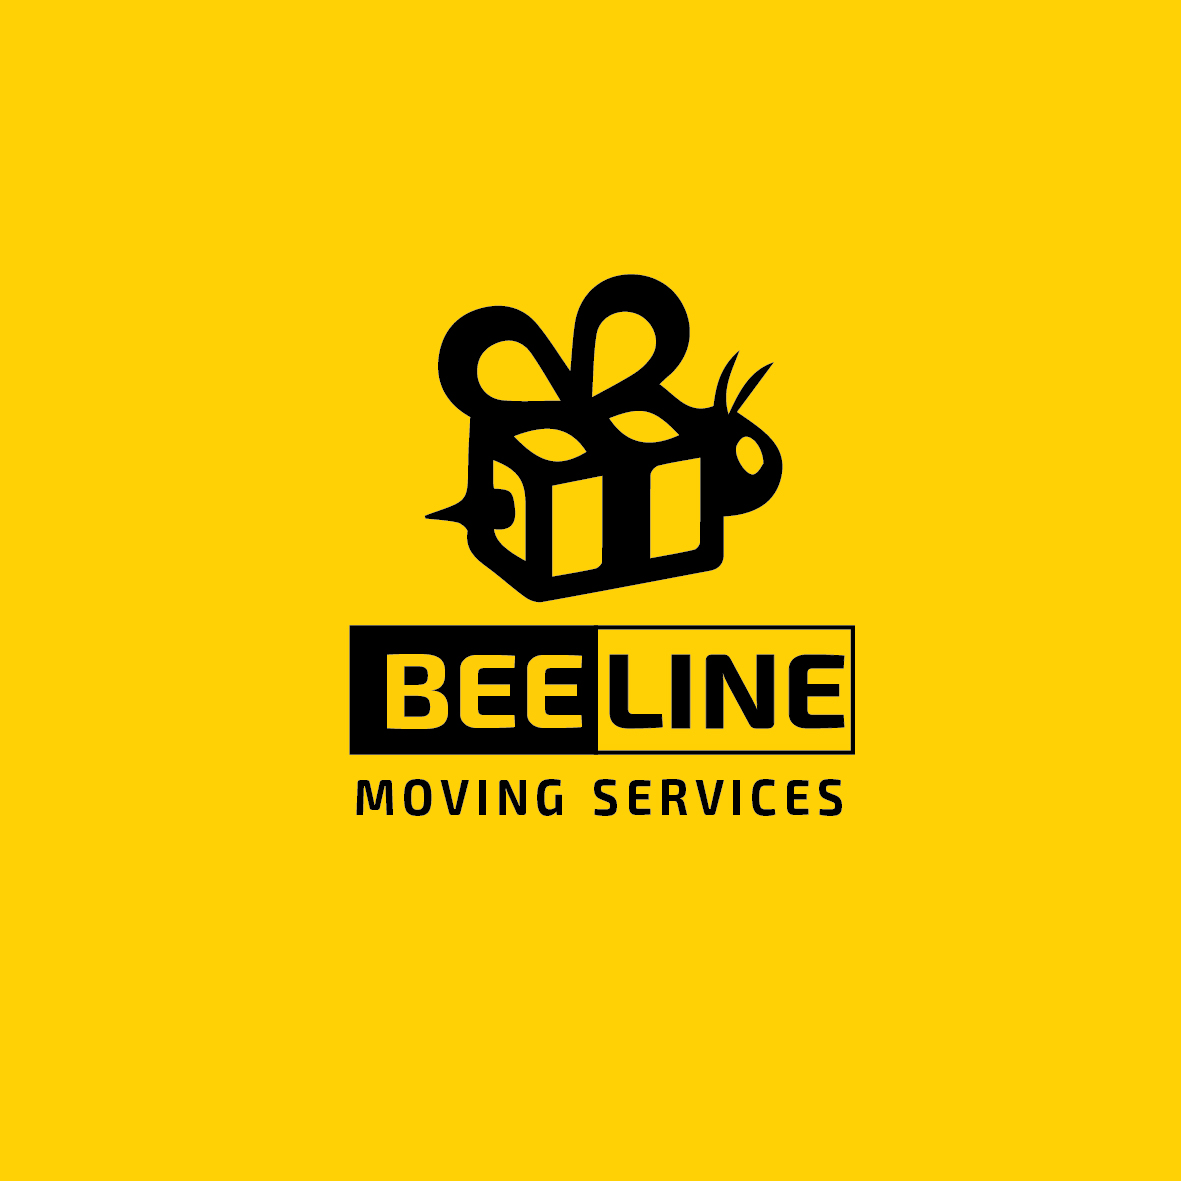 Beeline moving logo